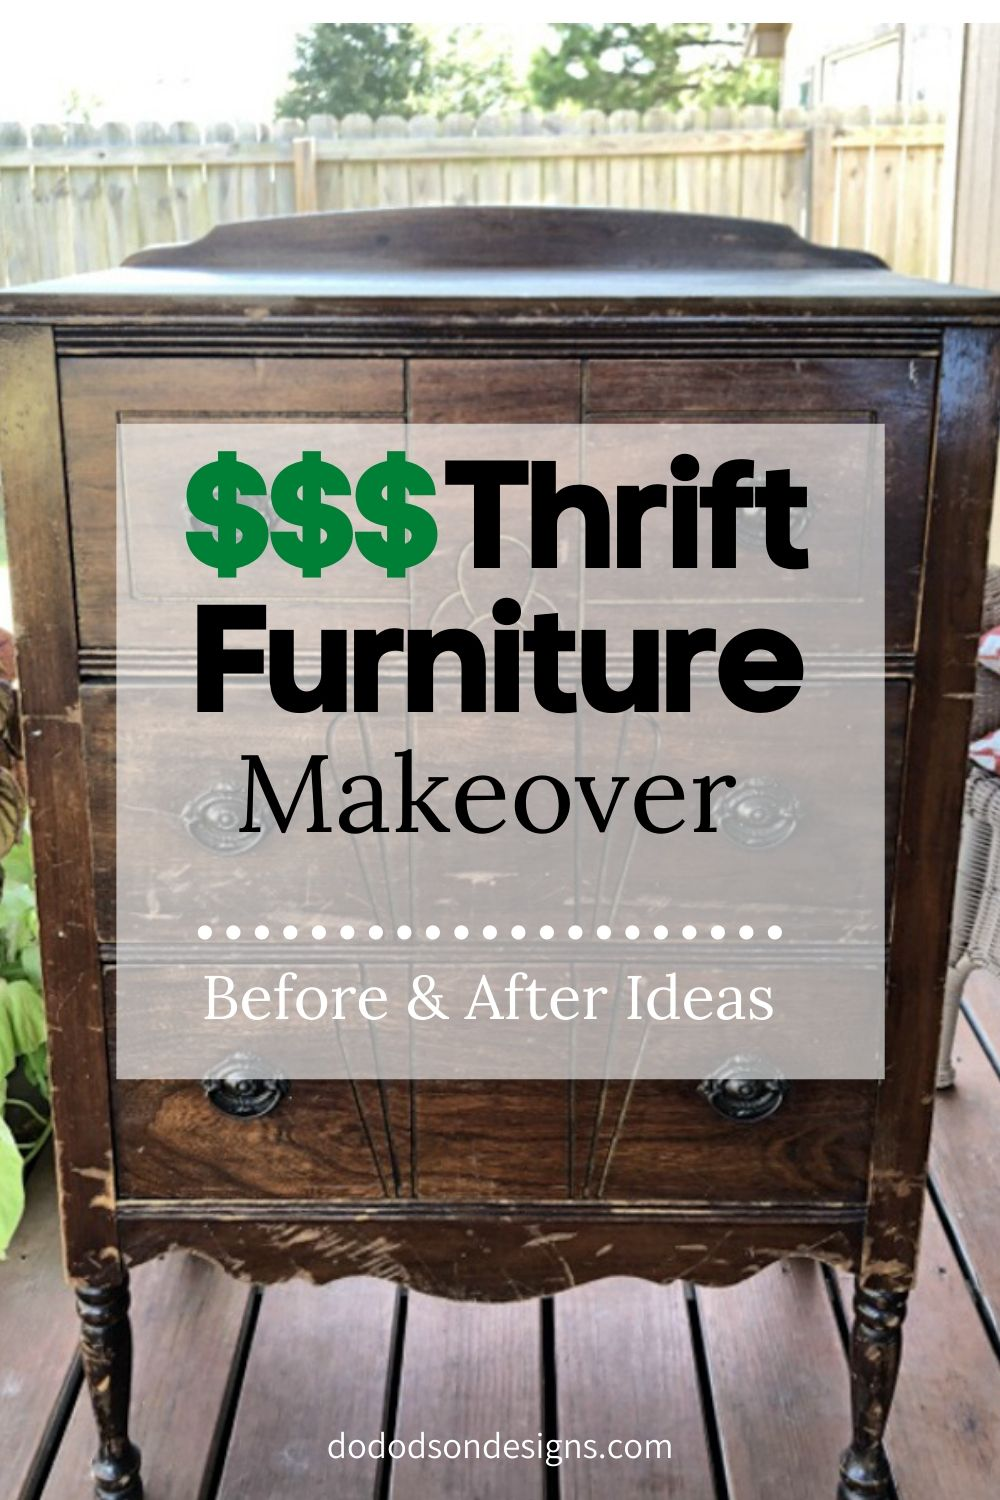 Easy Thrift Furniture Makeover That Will Save You Money $$$